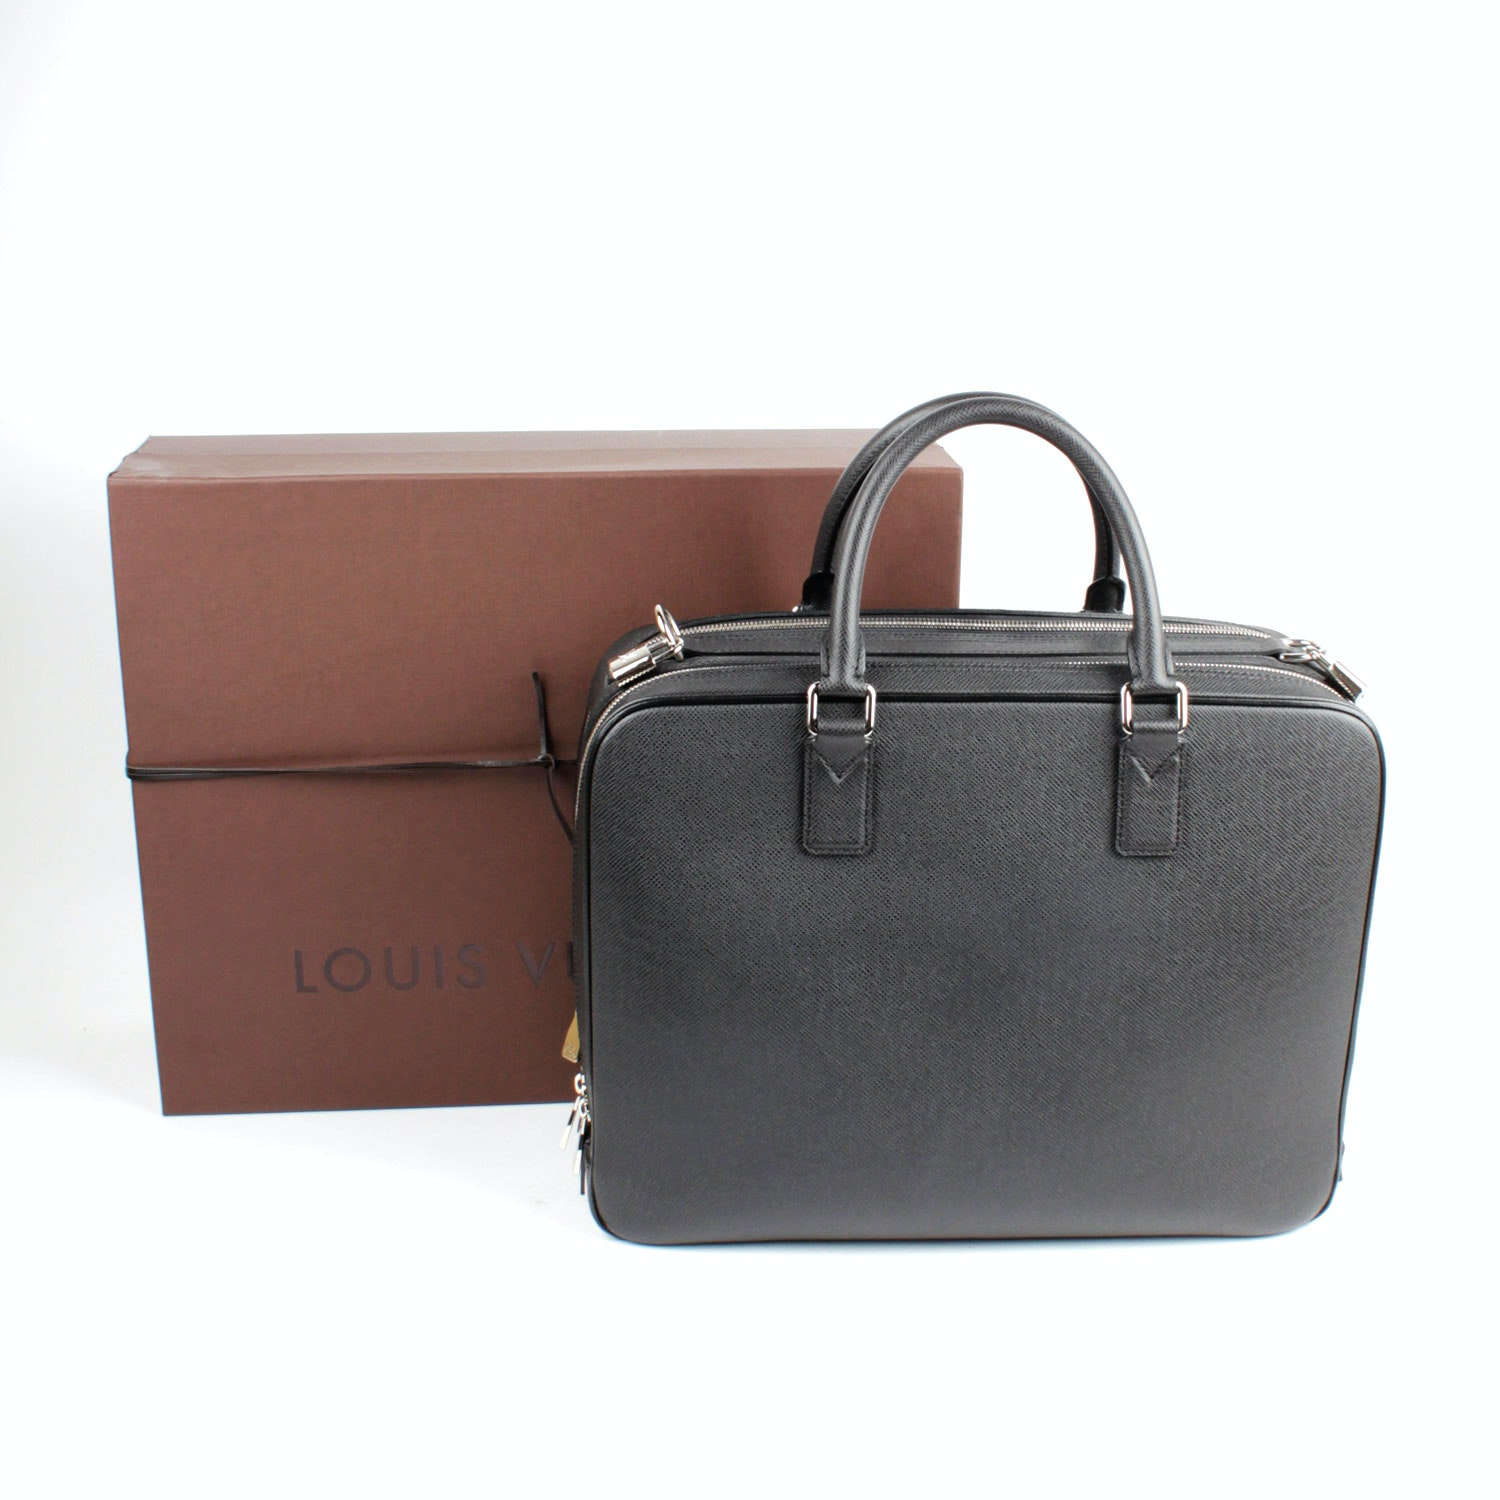 Louis Vuitton Ned Alexander Briefcase in Taiga Leather